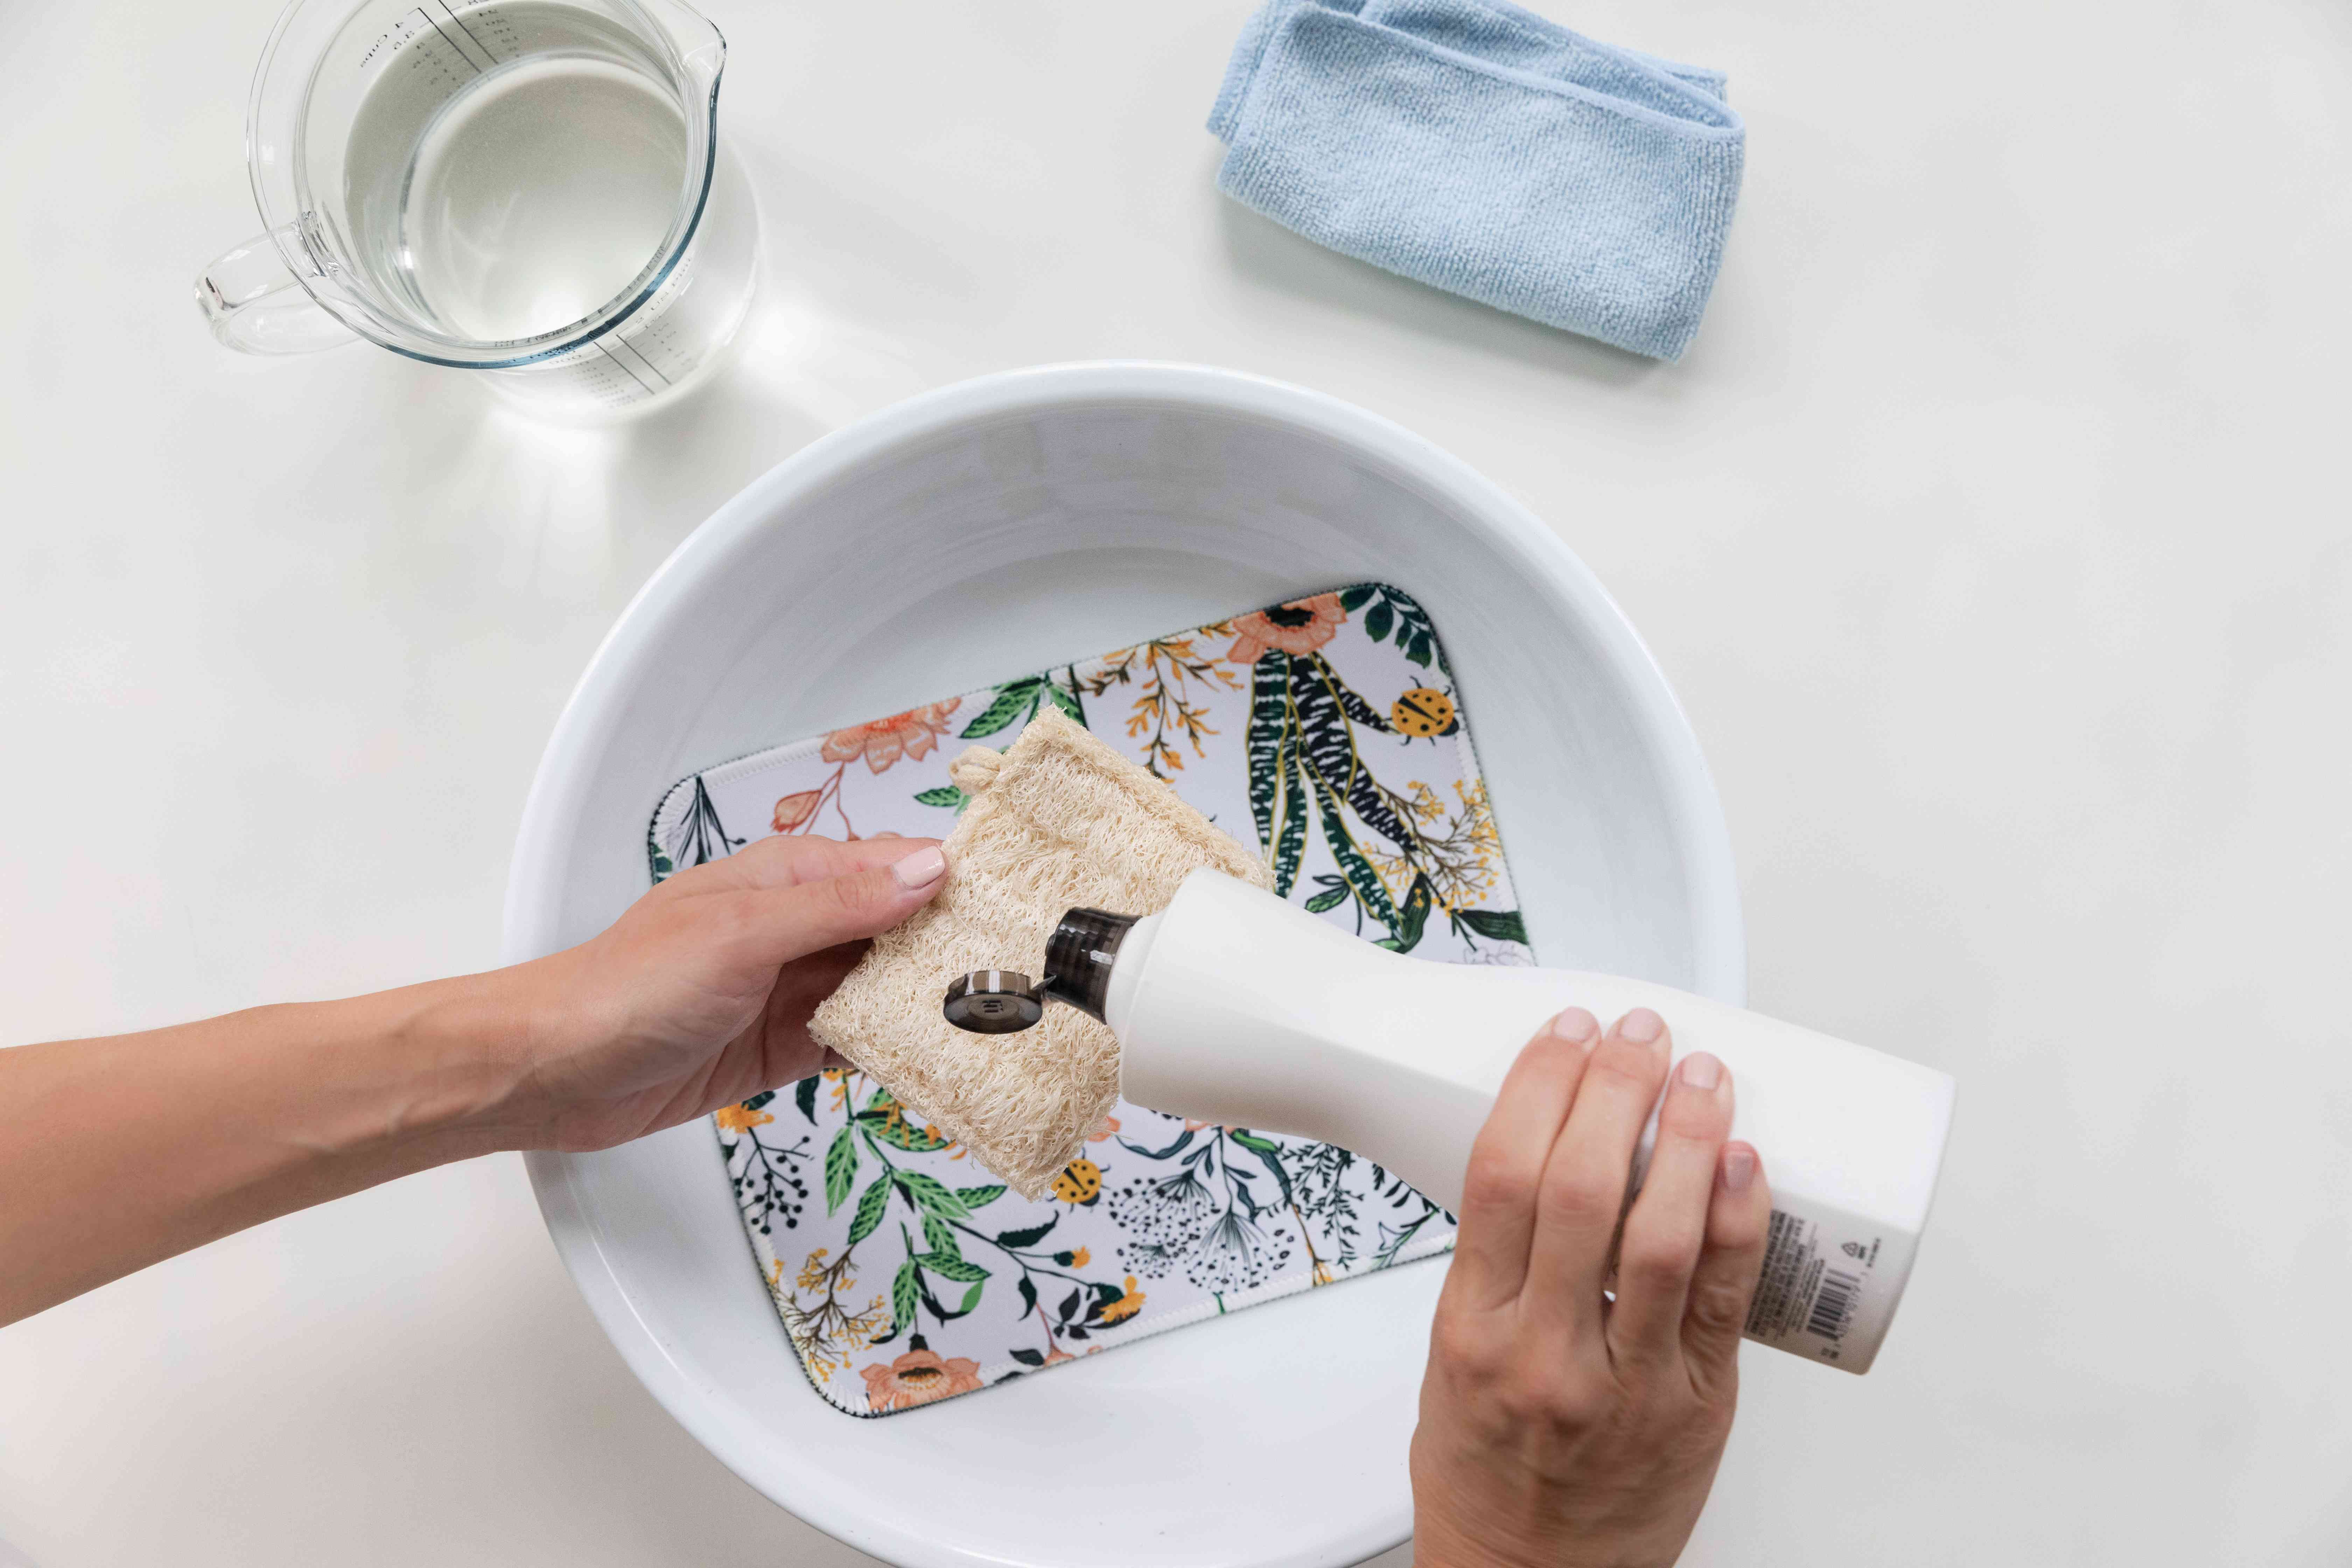 Dishwashing liquid added to tan sponge over floral mousepad in white container